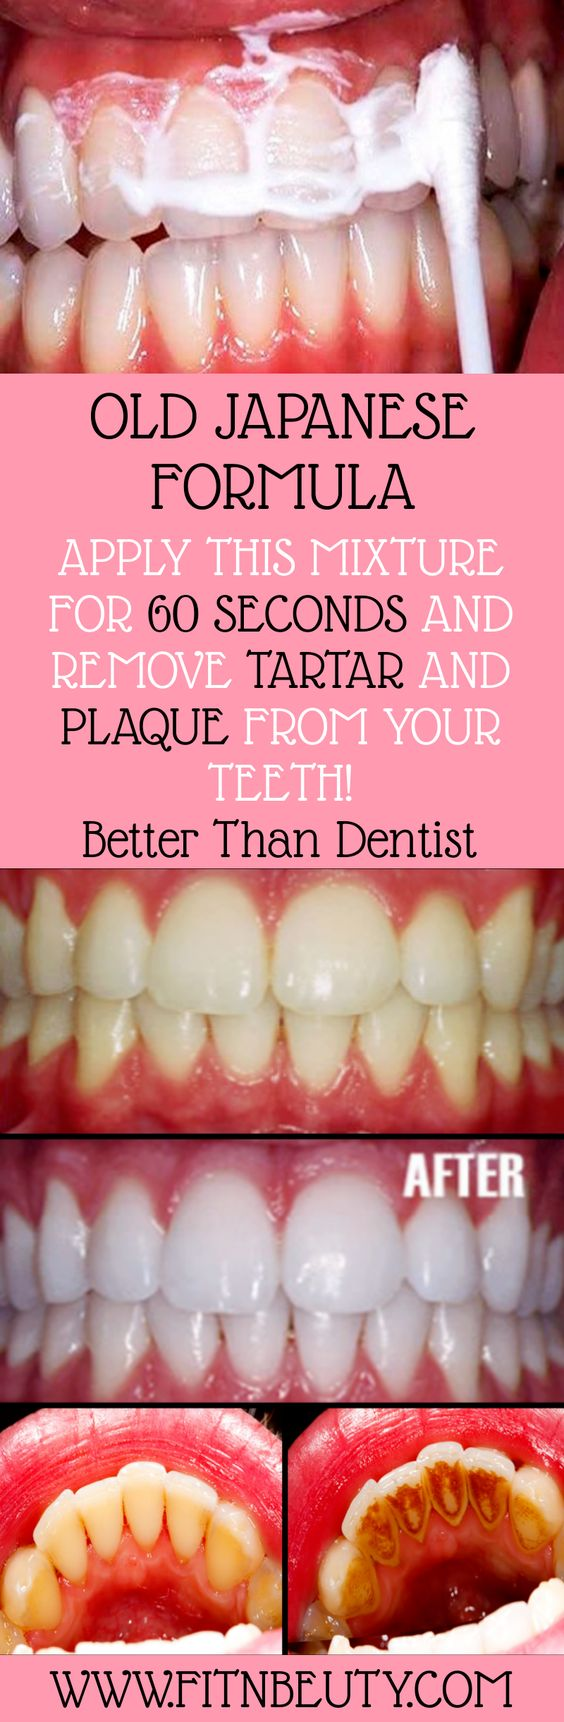 OLD JAPANESE FORMULA APPLY THIS MIXTURE FOR 60 SECONDS AND REMOVE TARTAR AND PLAQUE FROM YOUR TEETH! Better Than Dentist